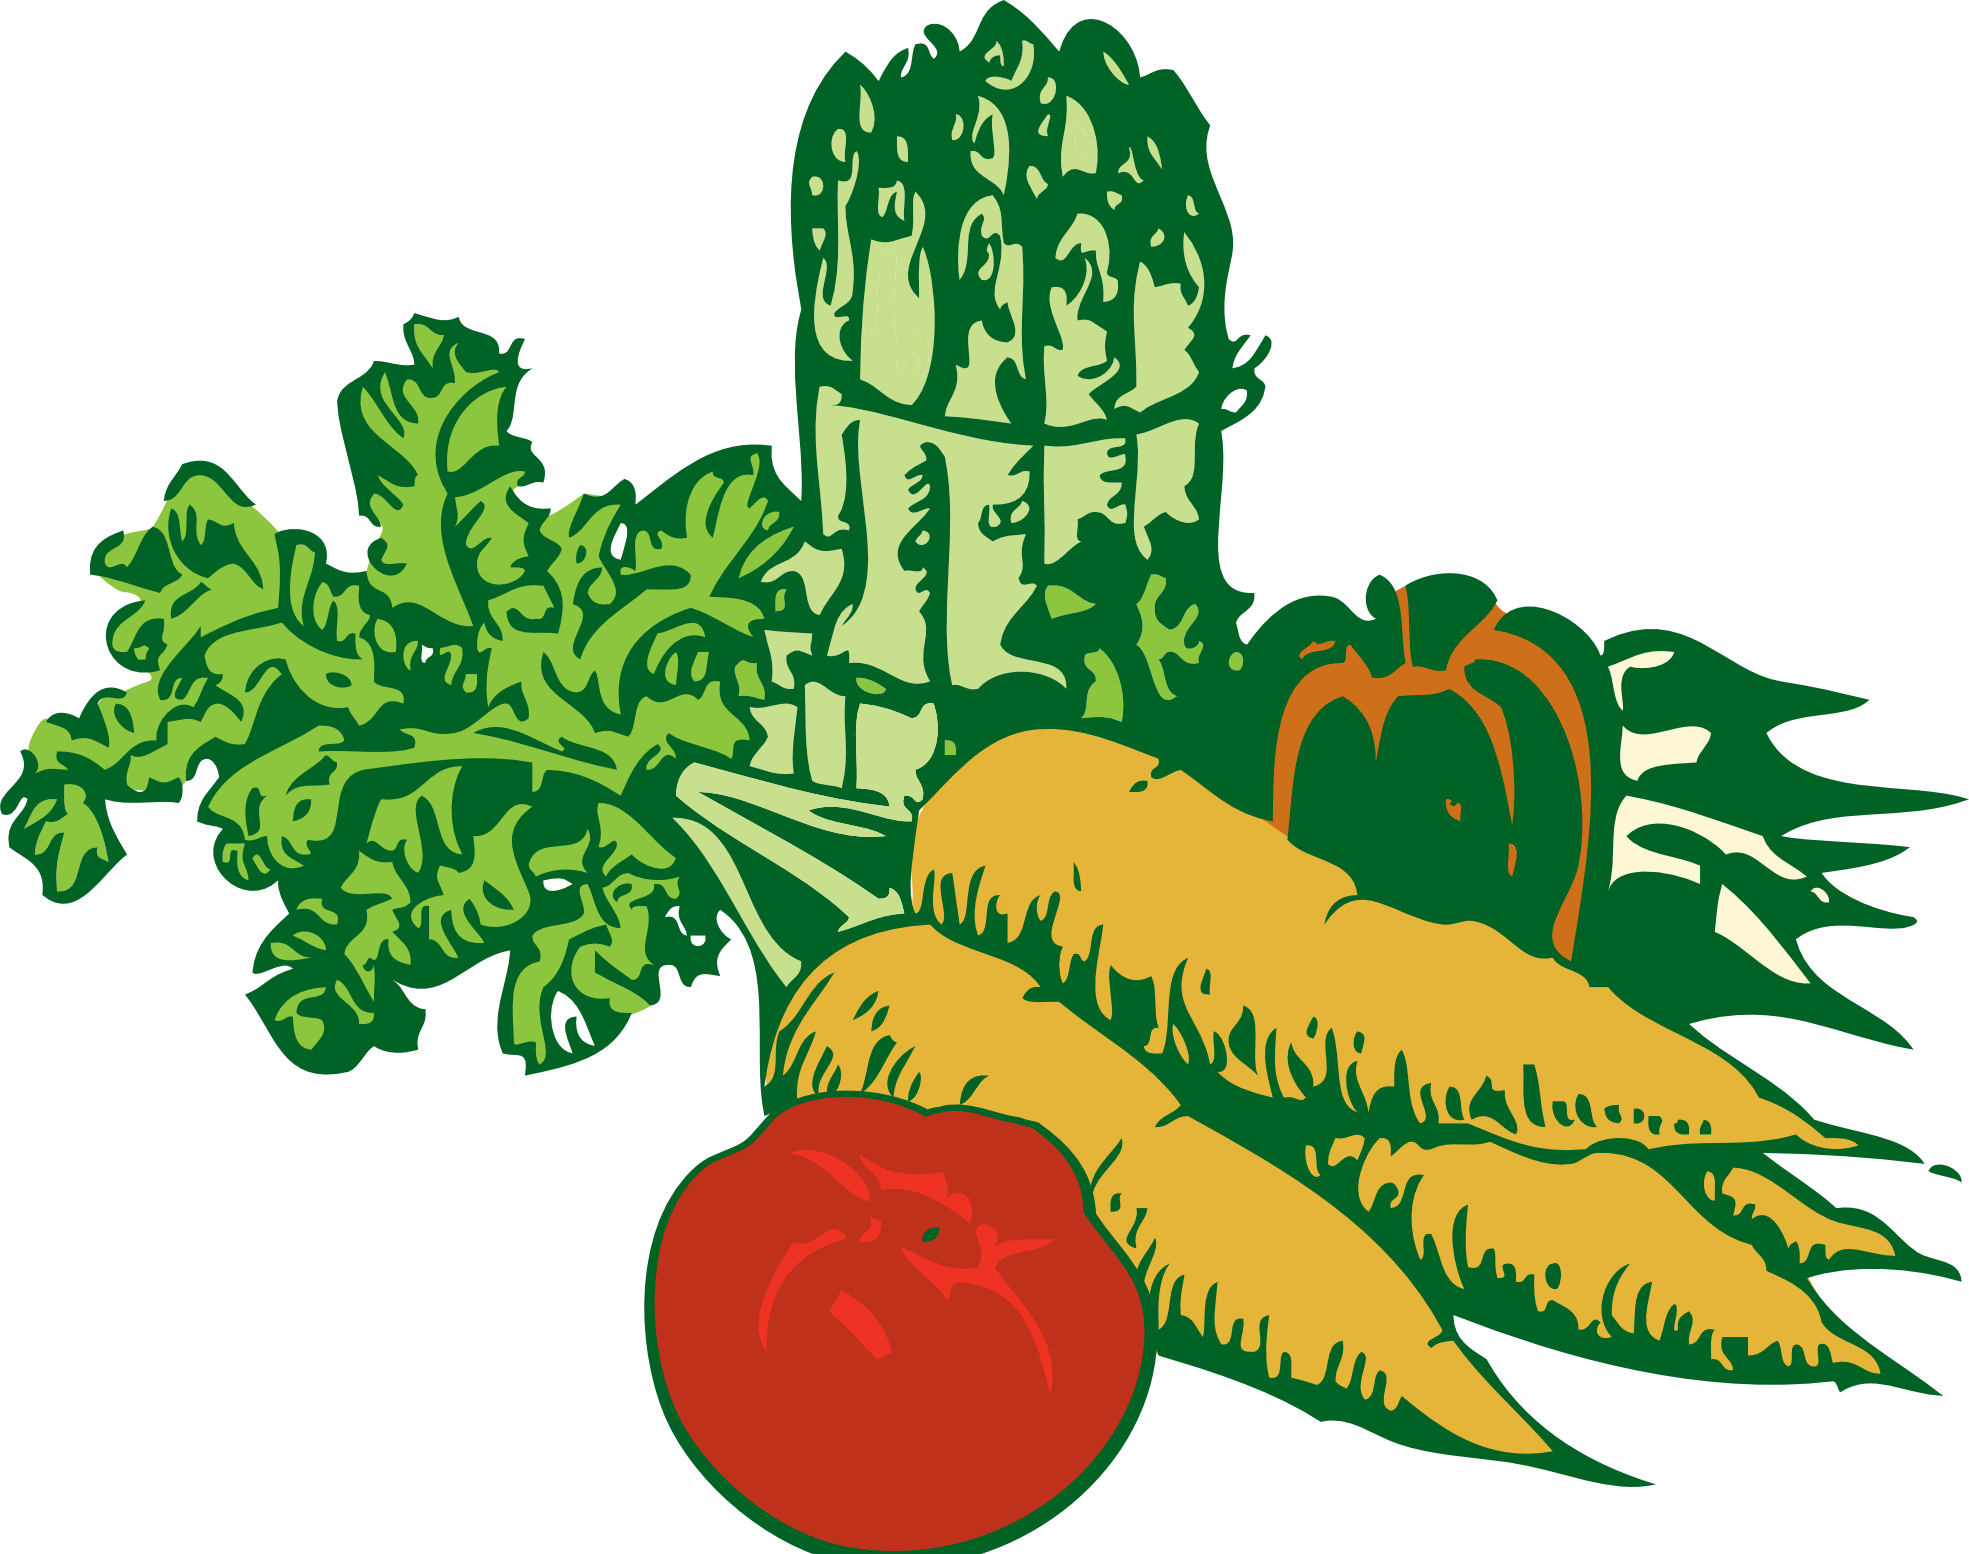 Panda free images vegetable. Vegetables clipart